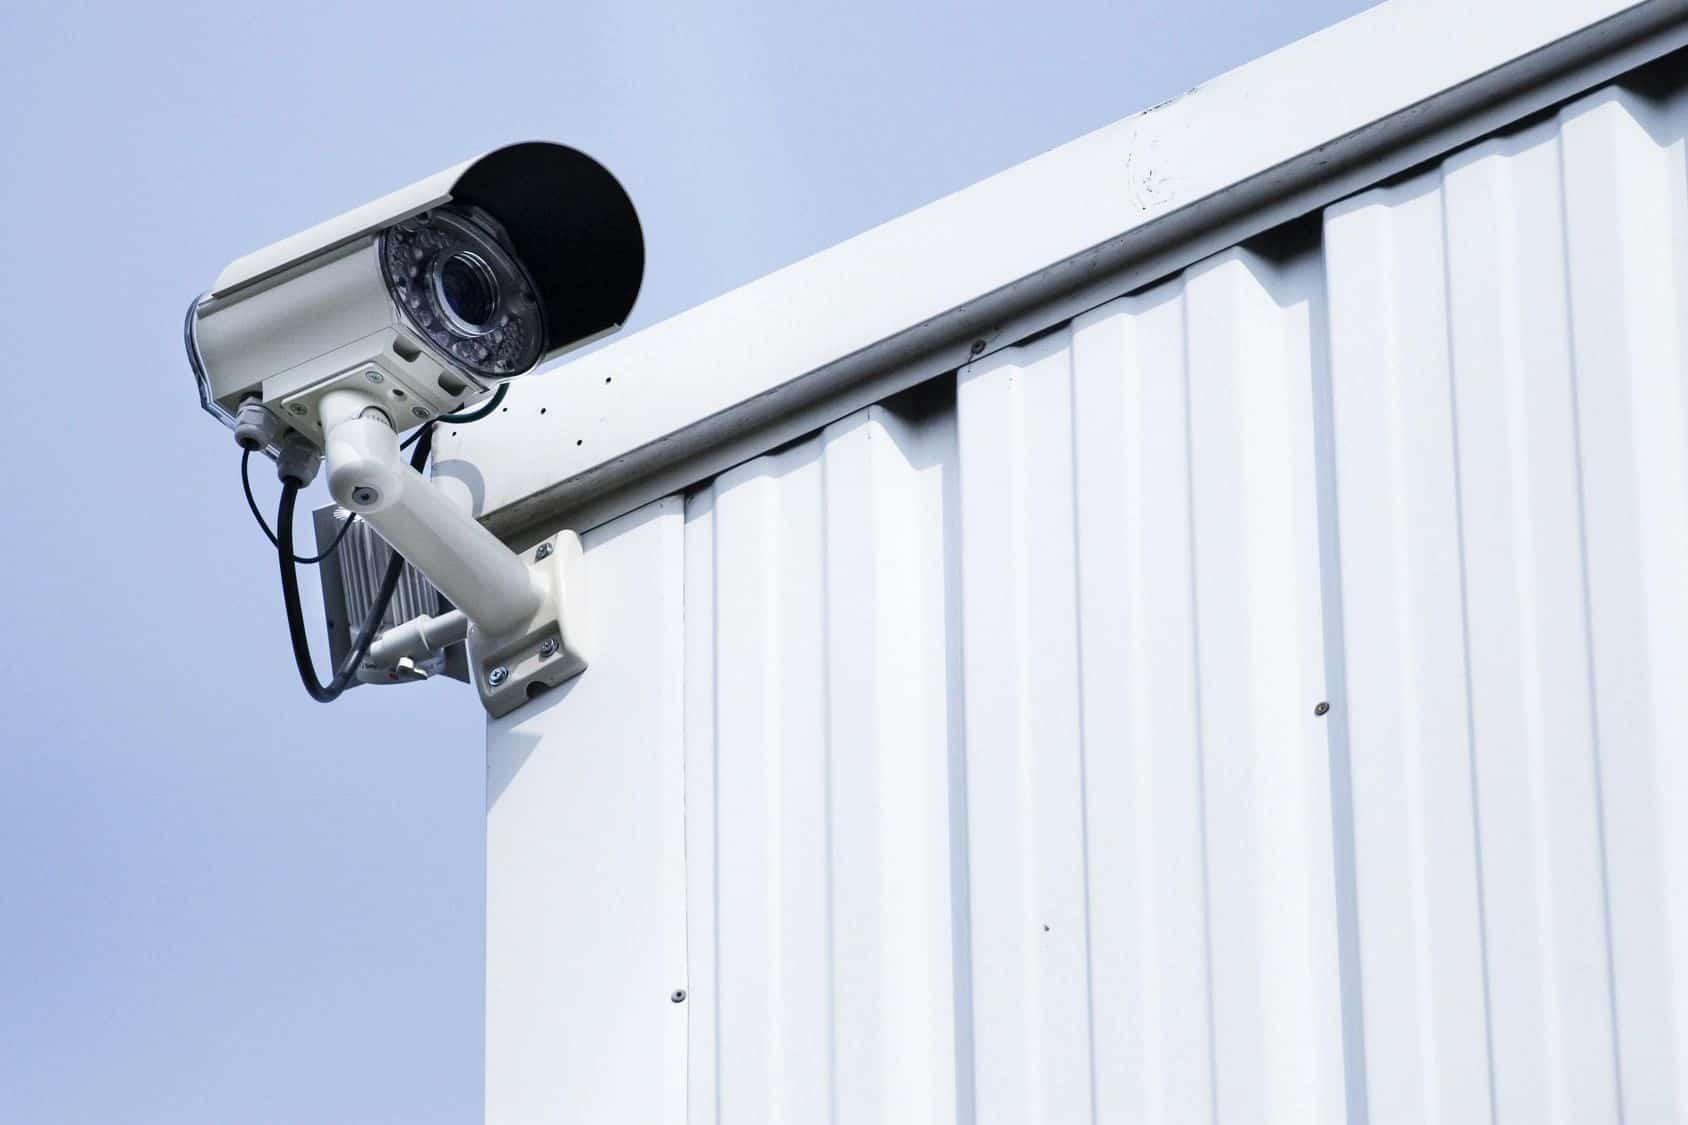 Security Camera on a commercial building